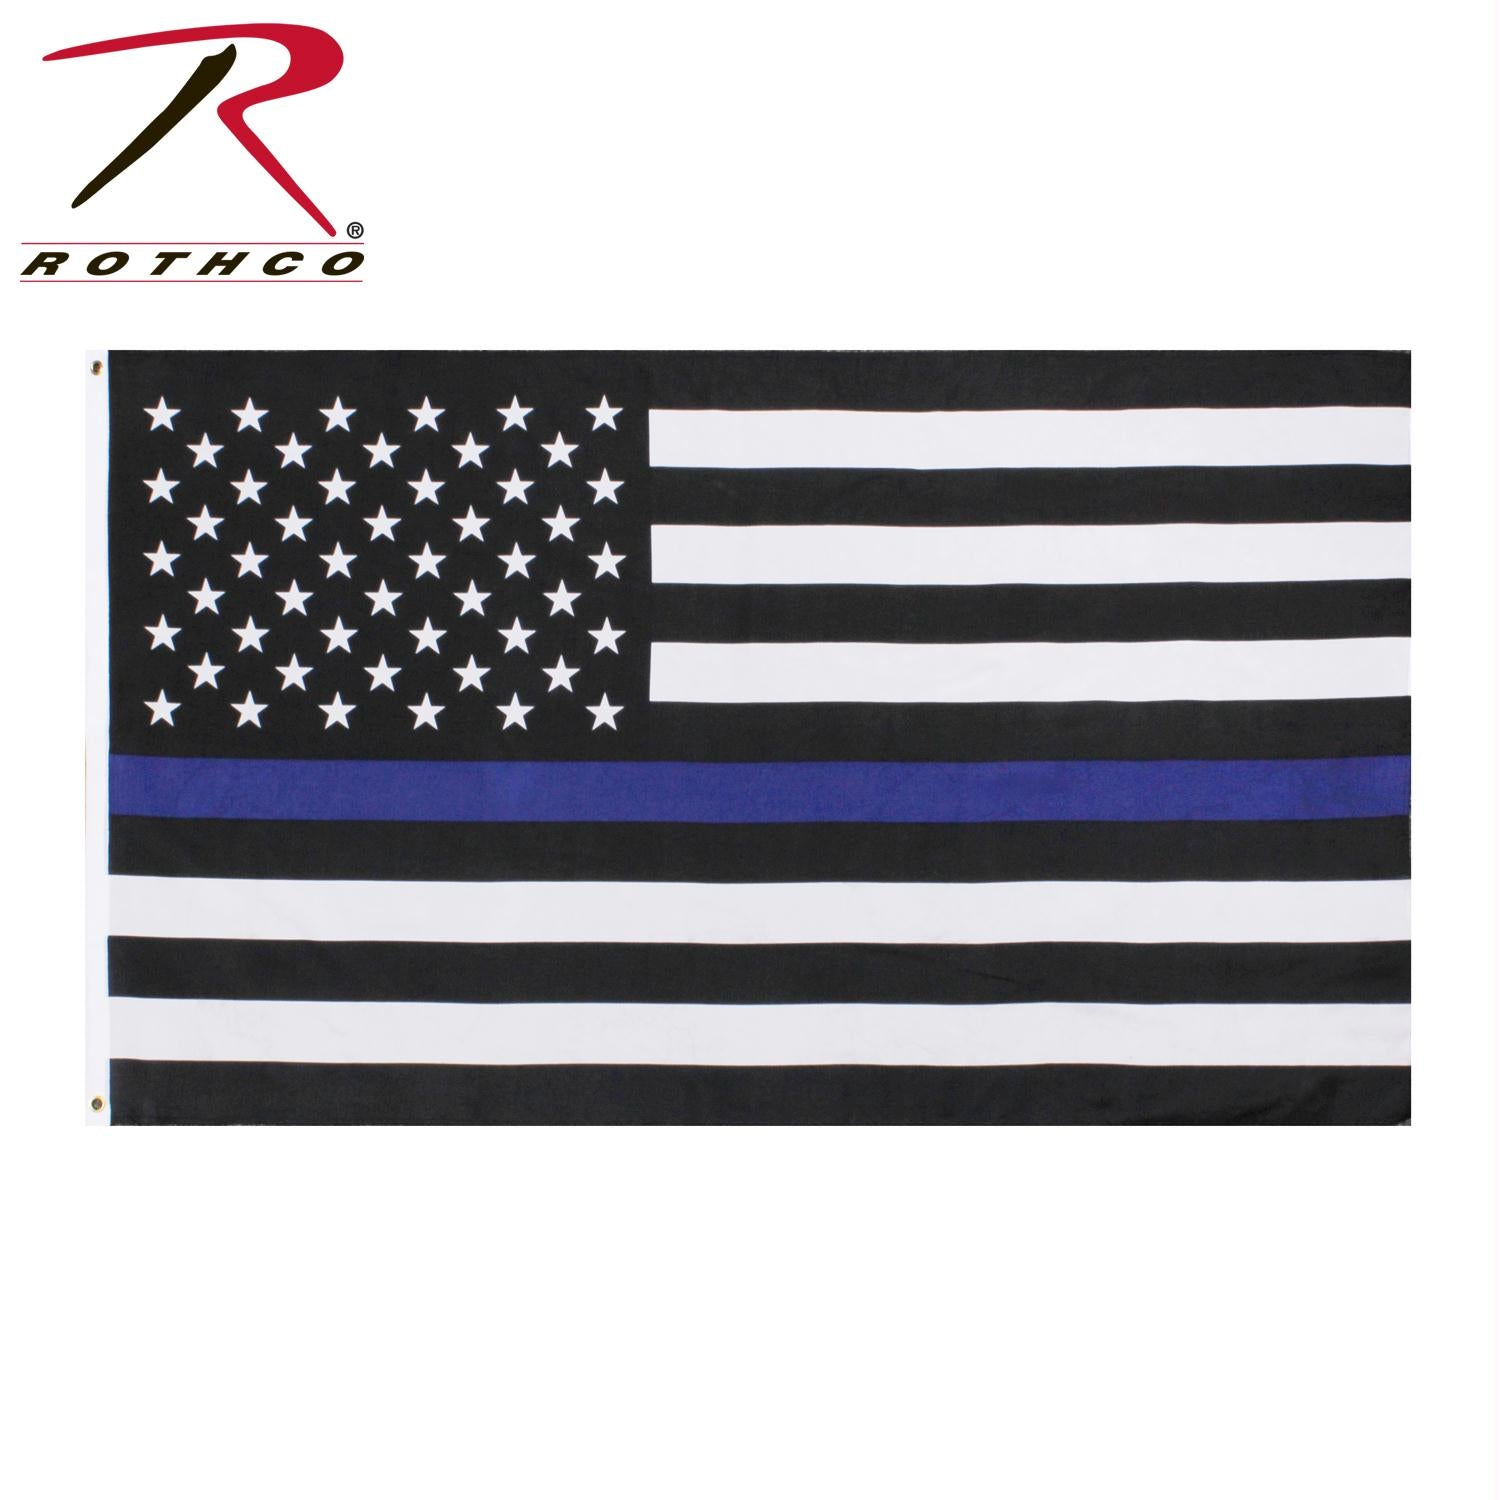 Rothco Thin Blue Line Flag